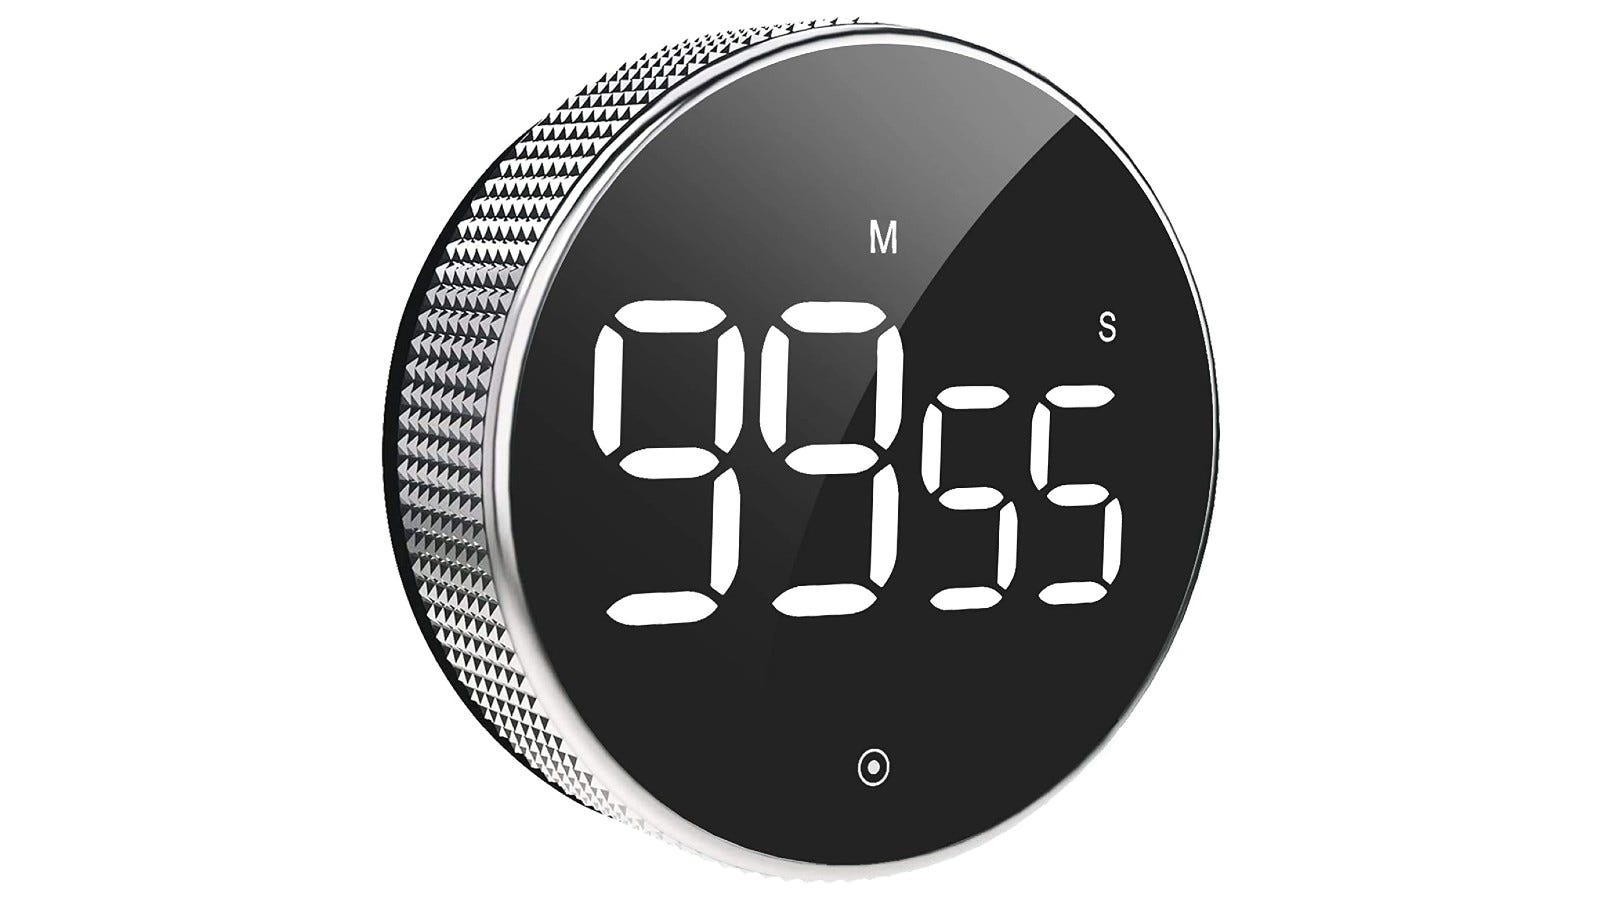 a countdown timer featuring an LED display screen